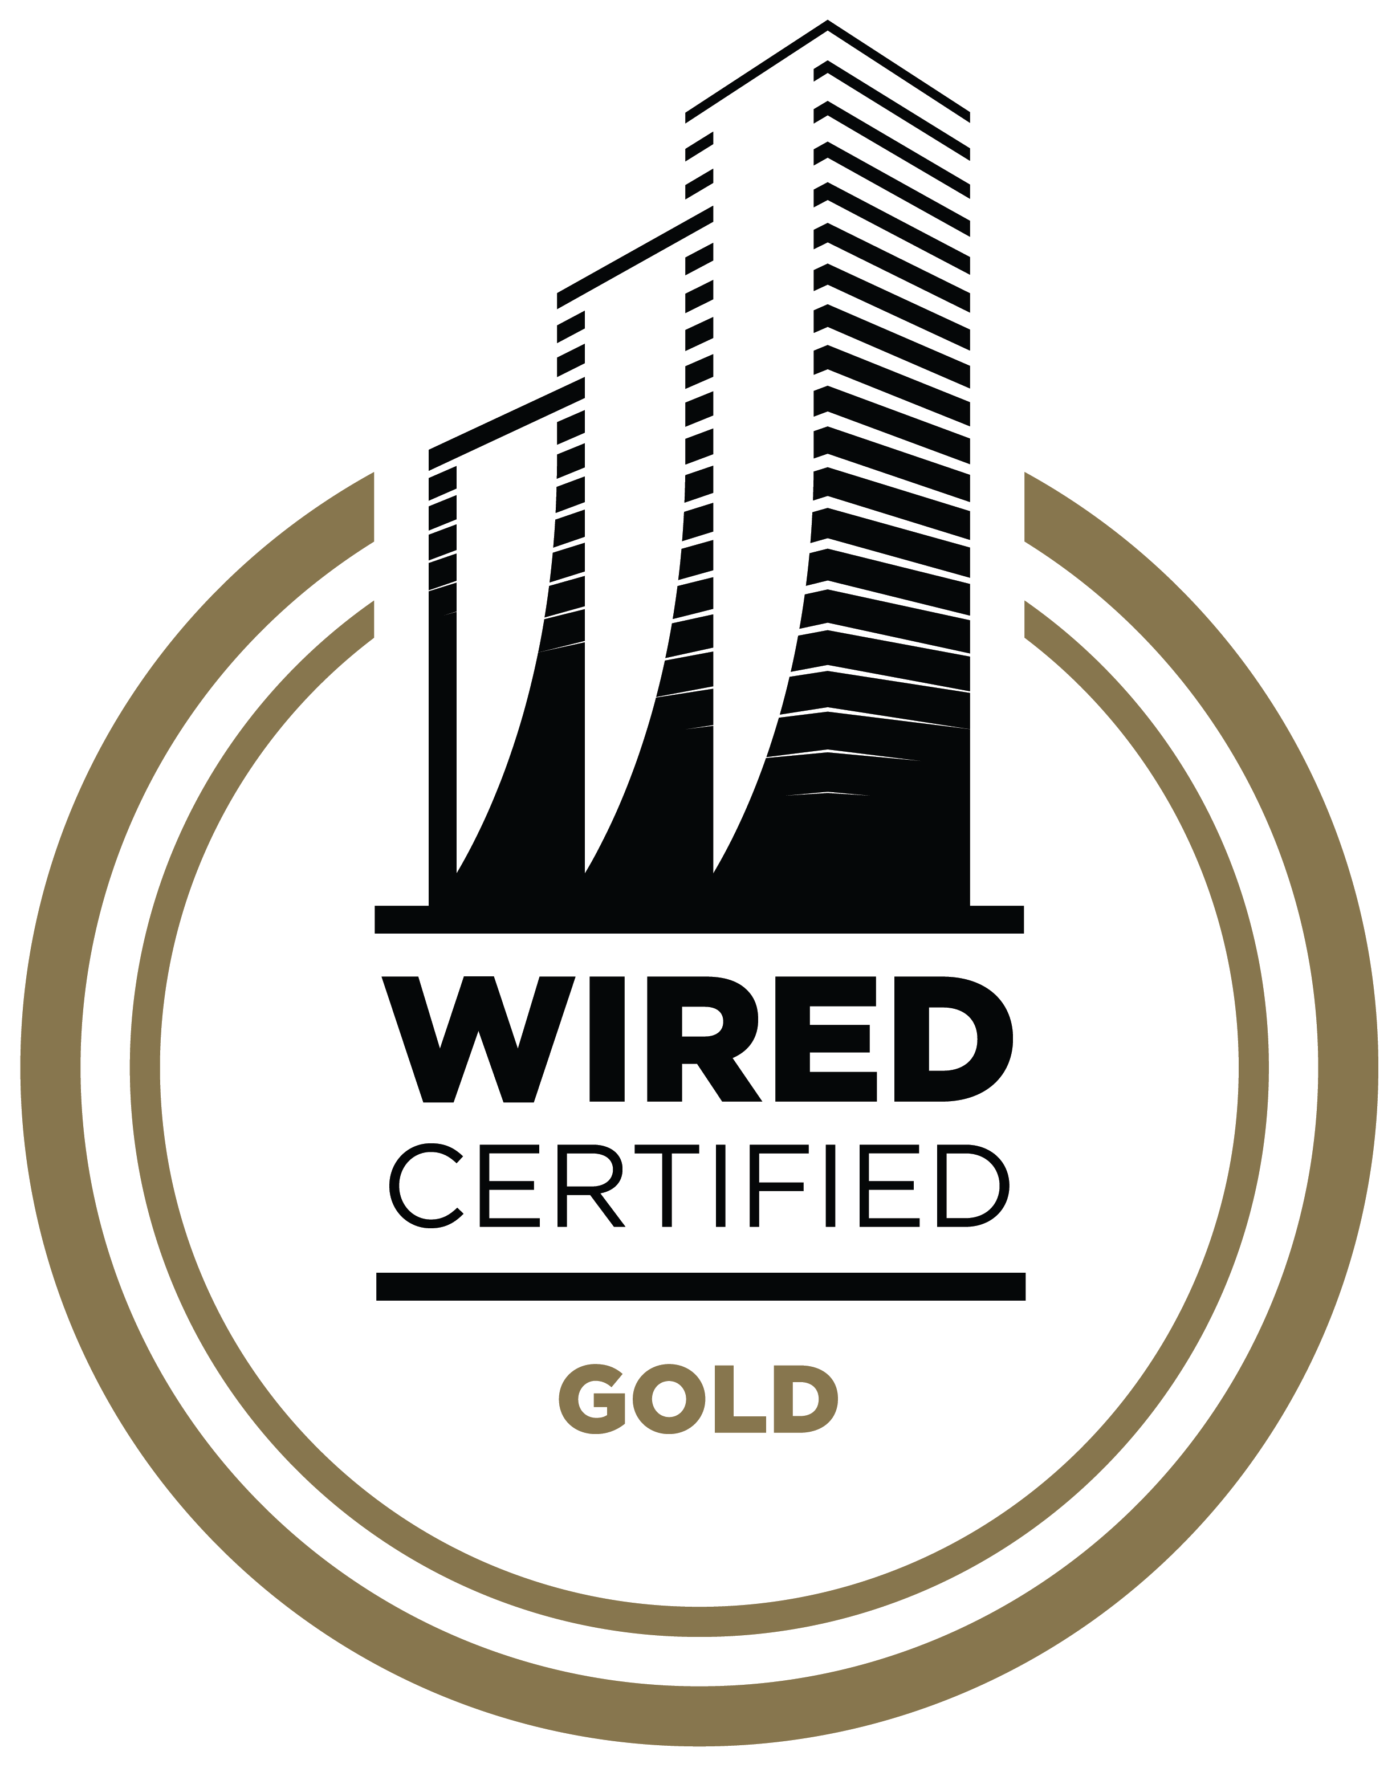 Wired Certified Gold Image